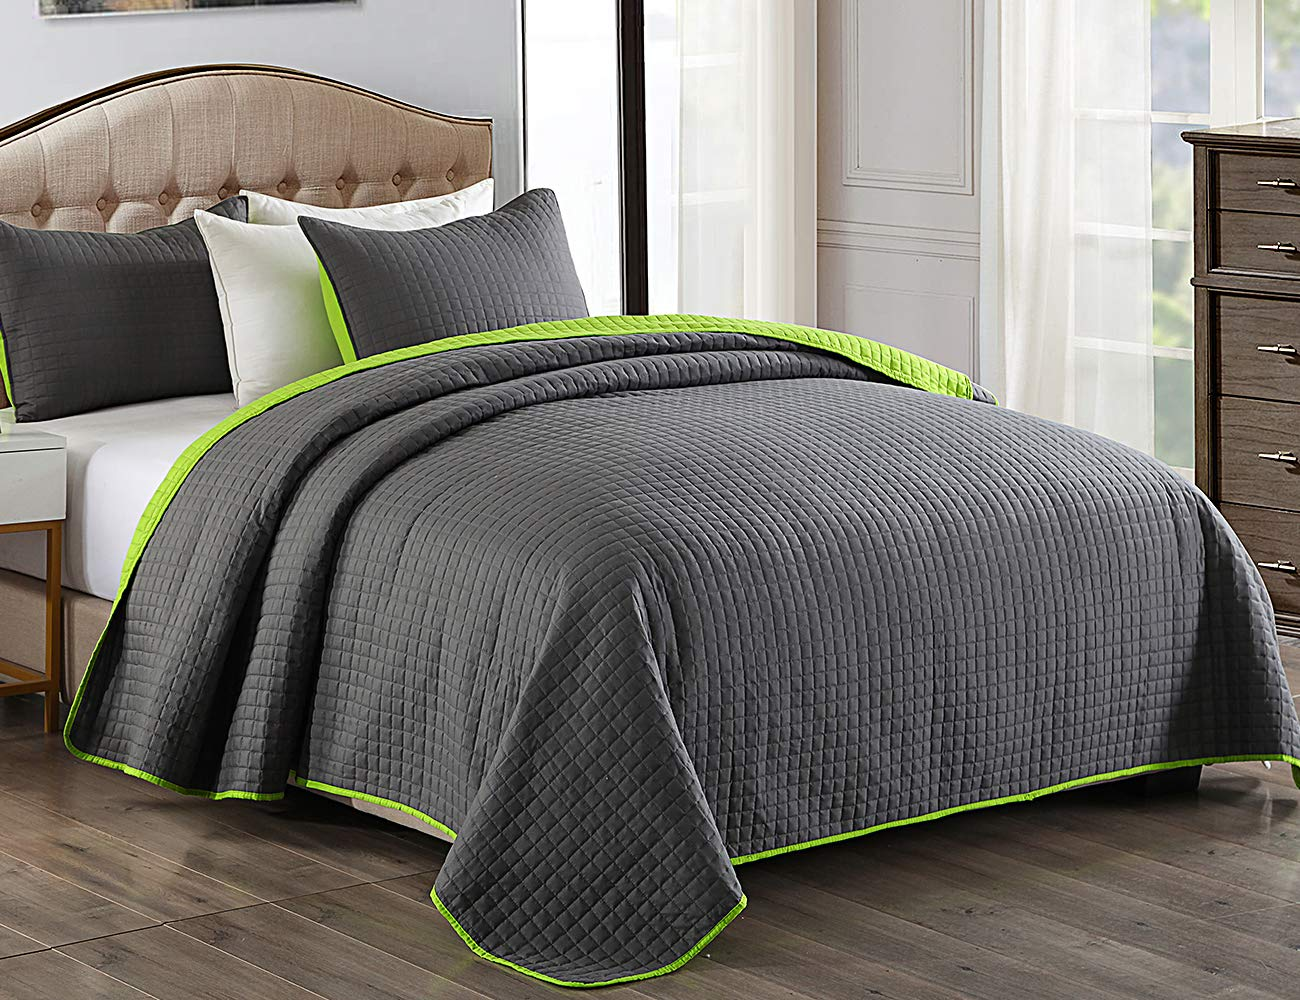 """JML Quilt Set, 3 Piece Bedspreads Queen Size - Reversible Plaid Design - Brushed Microfiber Coverlet Set for All Season, Soft Lightweight and Shrink Resistant (88""""x92"""", Charcoal Gray/Lime Green)"""